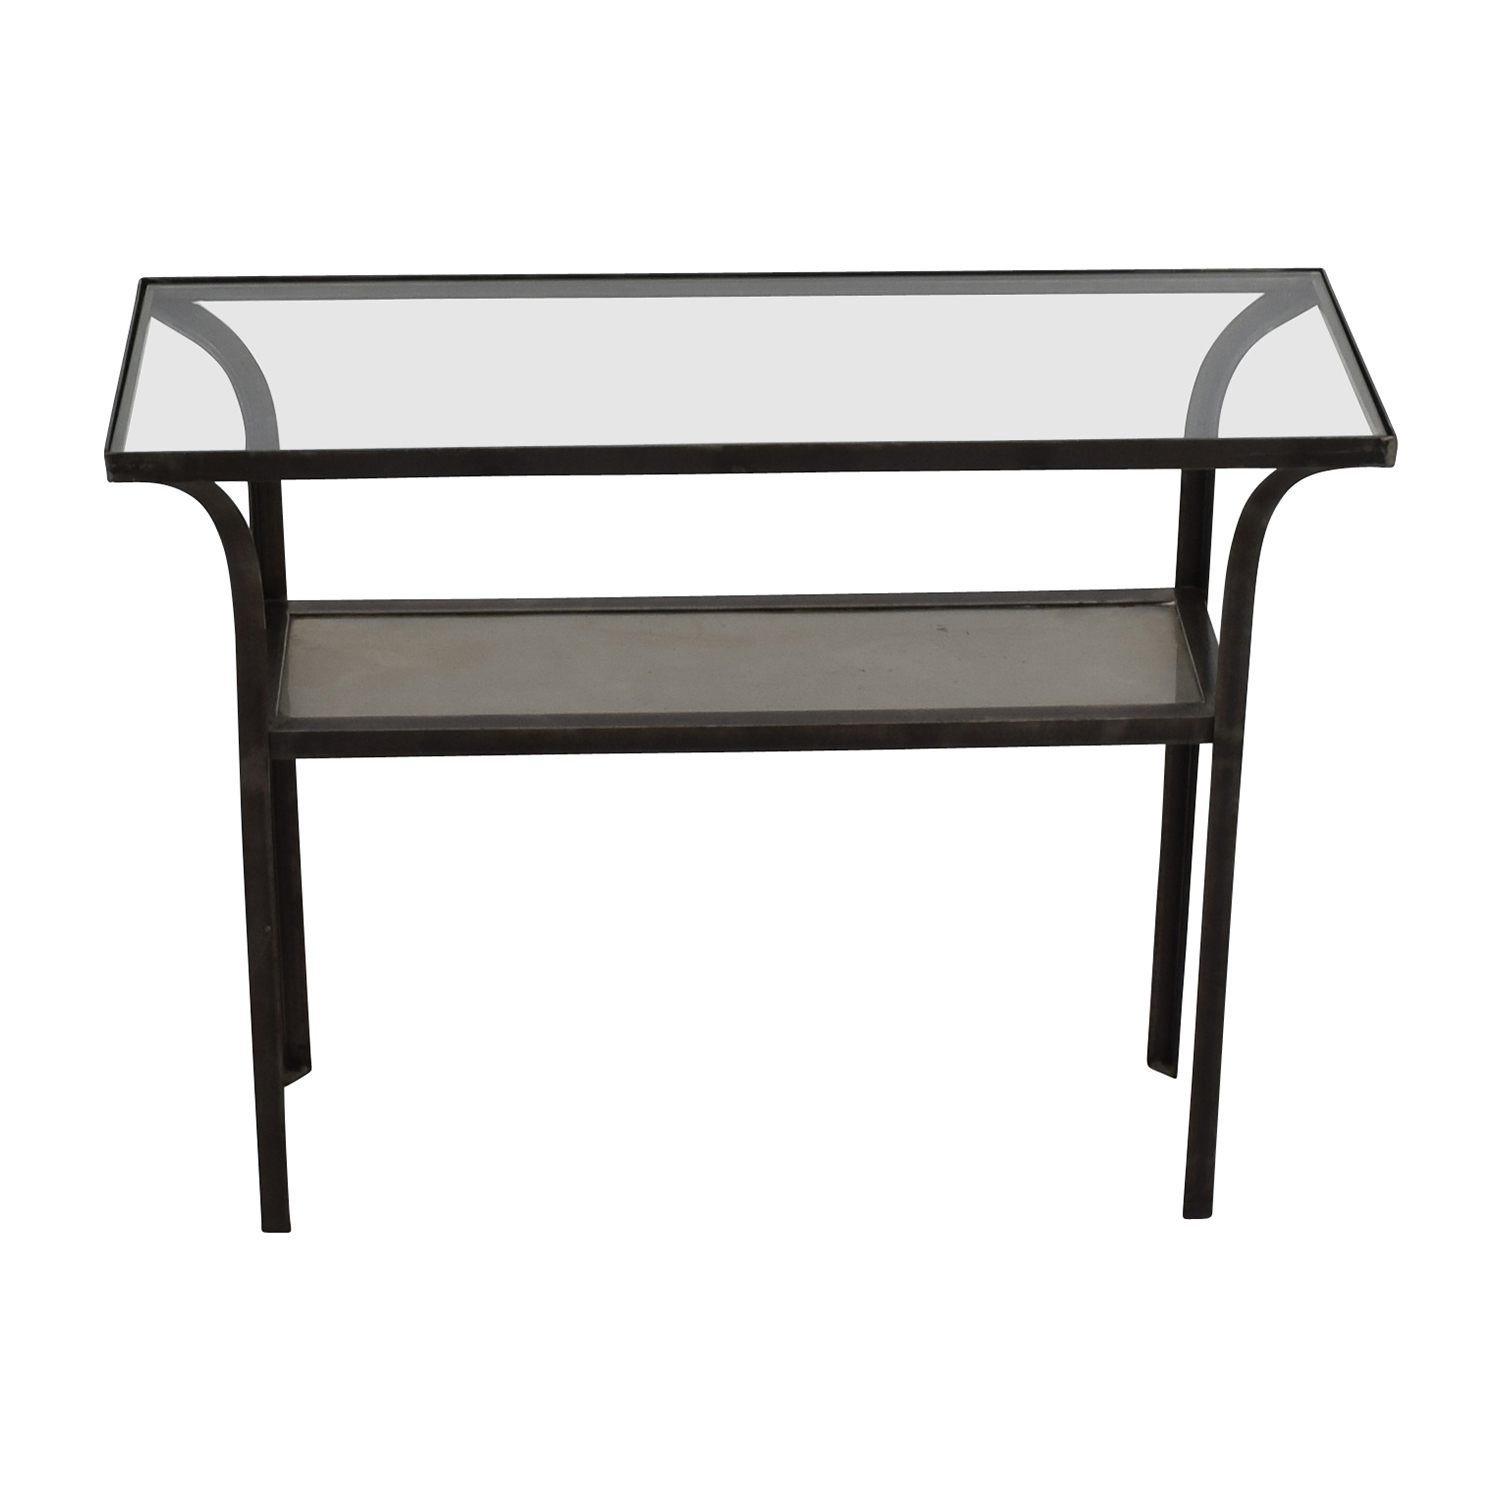 Crate and Barrel Crate & Barrel Black Glass Console Table on sale